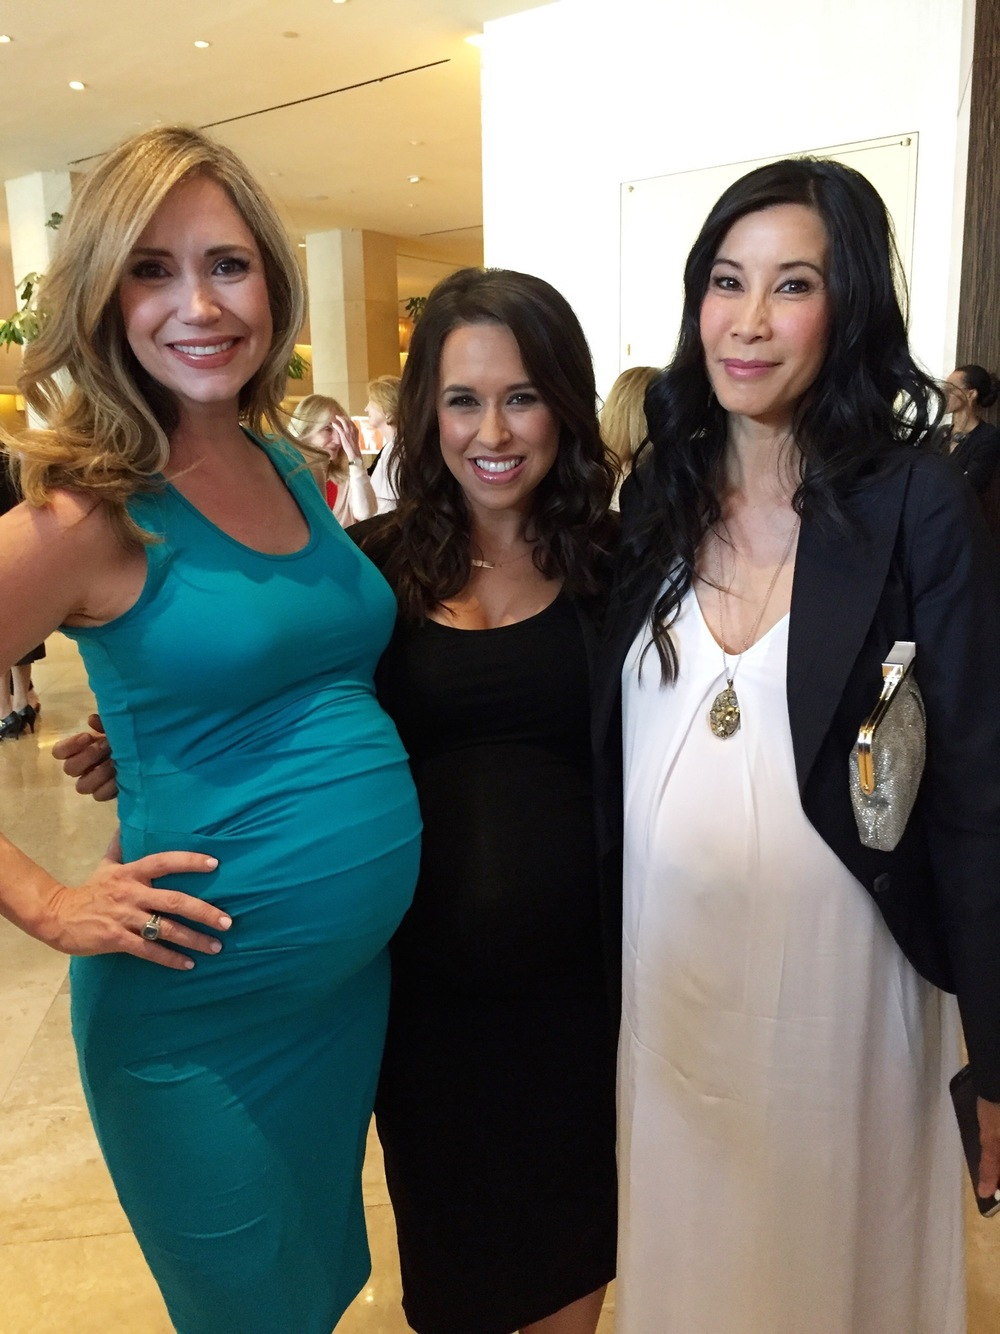 i stayed comfortable in this tank dress - Pictured at step up women's inspiration awards with fellow pregnant ladies Lacey Chabert and Lisa Ling (due in two weeks!). I love Lisa's flowy white NON-maternity dress  from another awesome supporter and sponsor of this year's event, MICHAEL STARS -take a look at some of their newer pieces. Great for maternity and non-maternity.